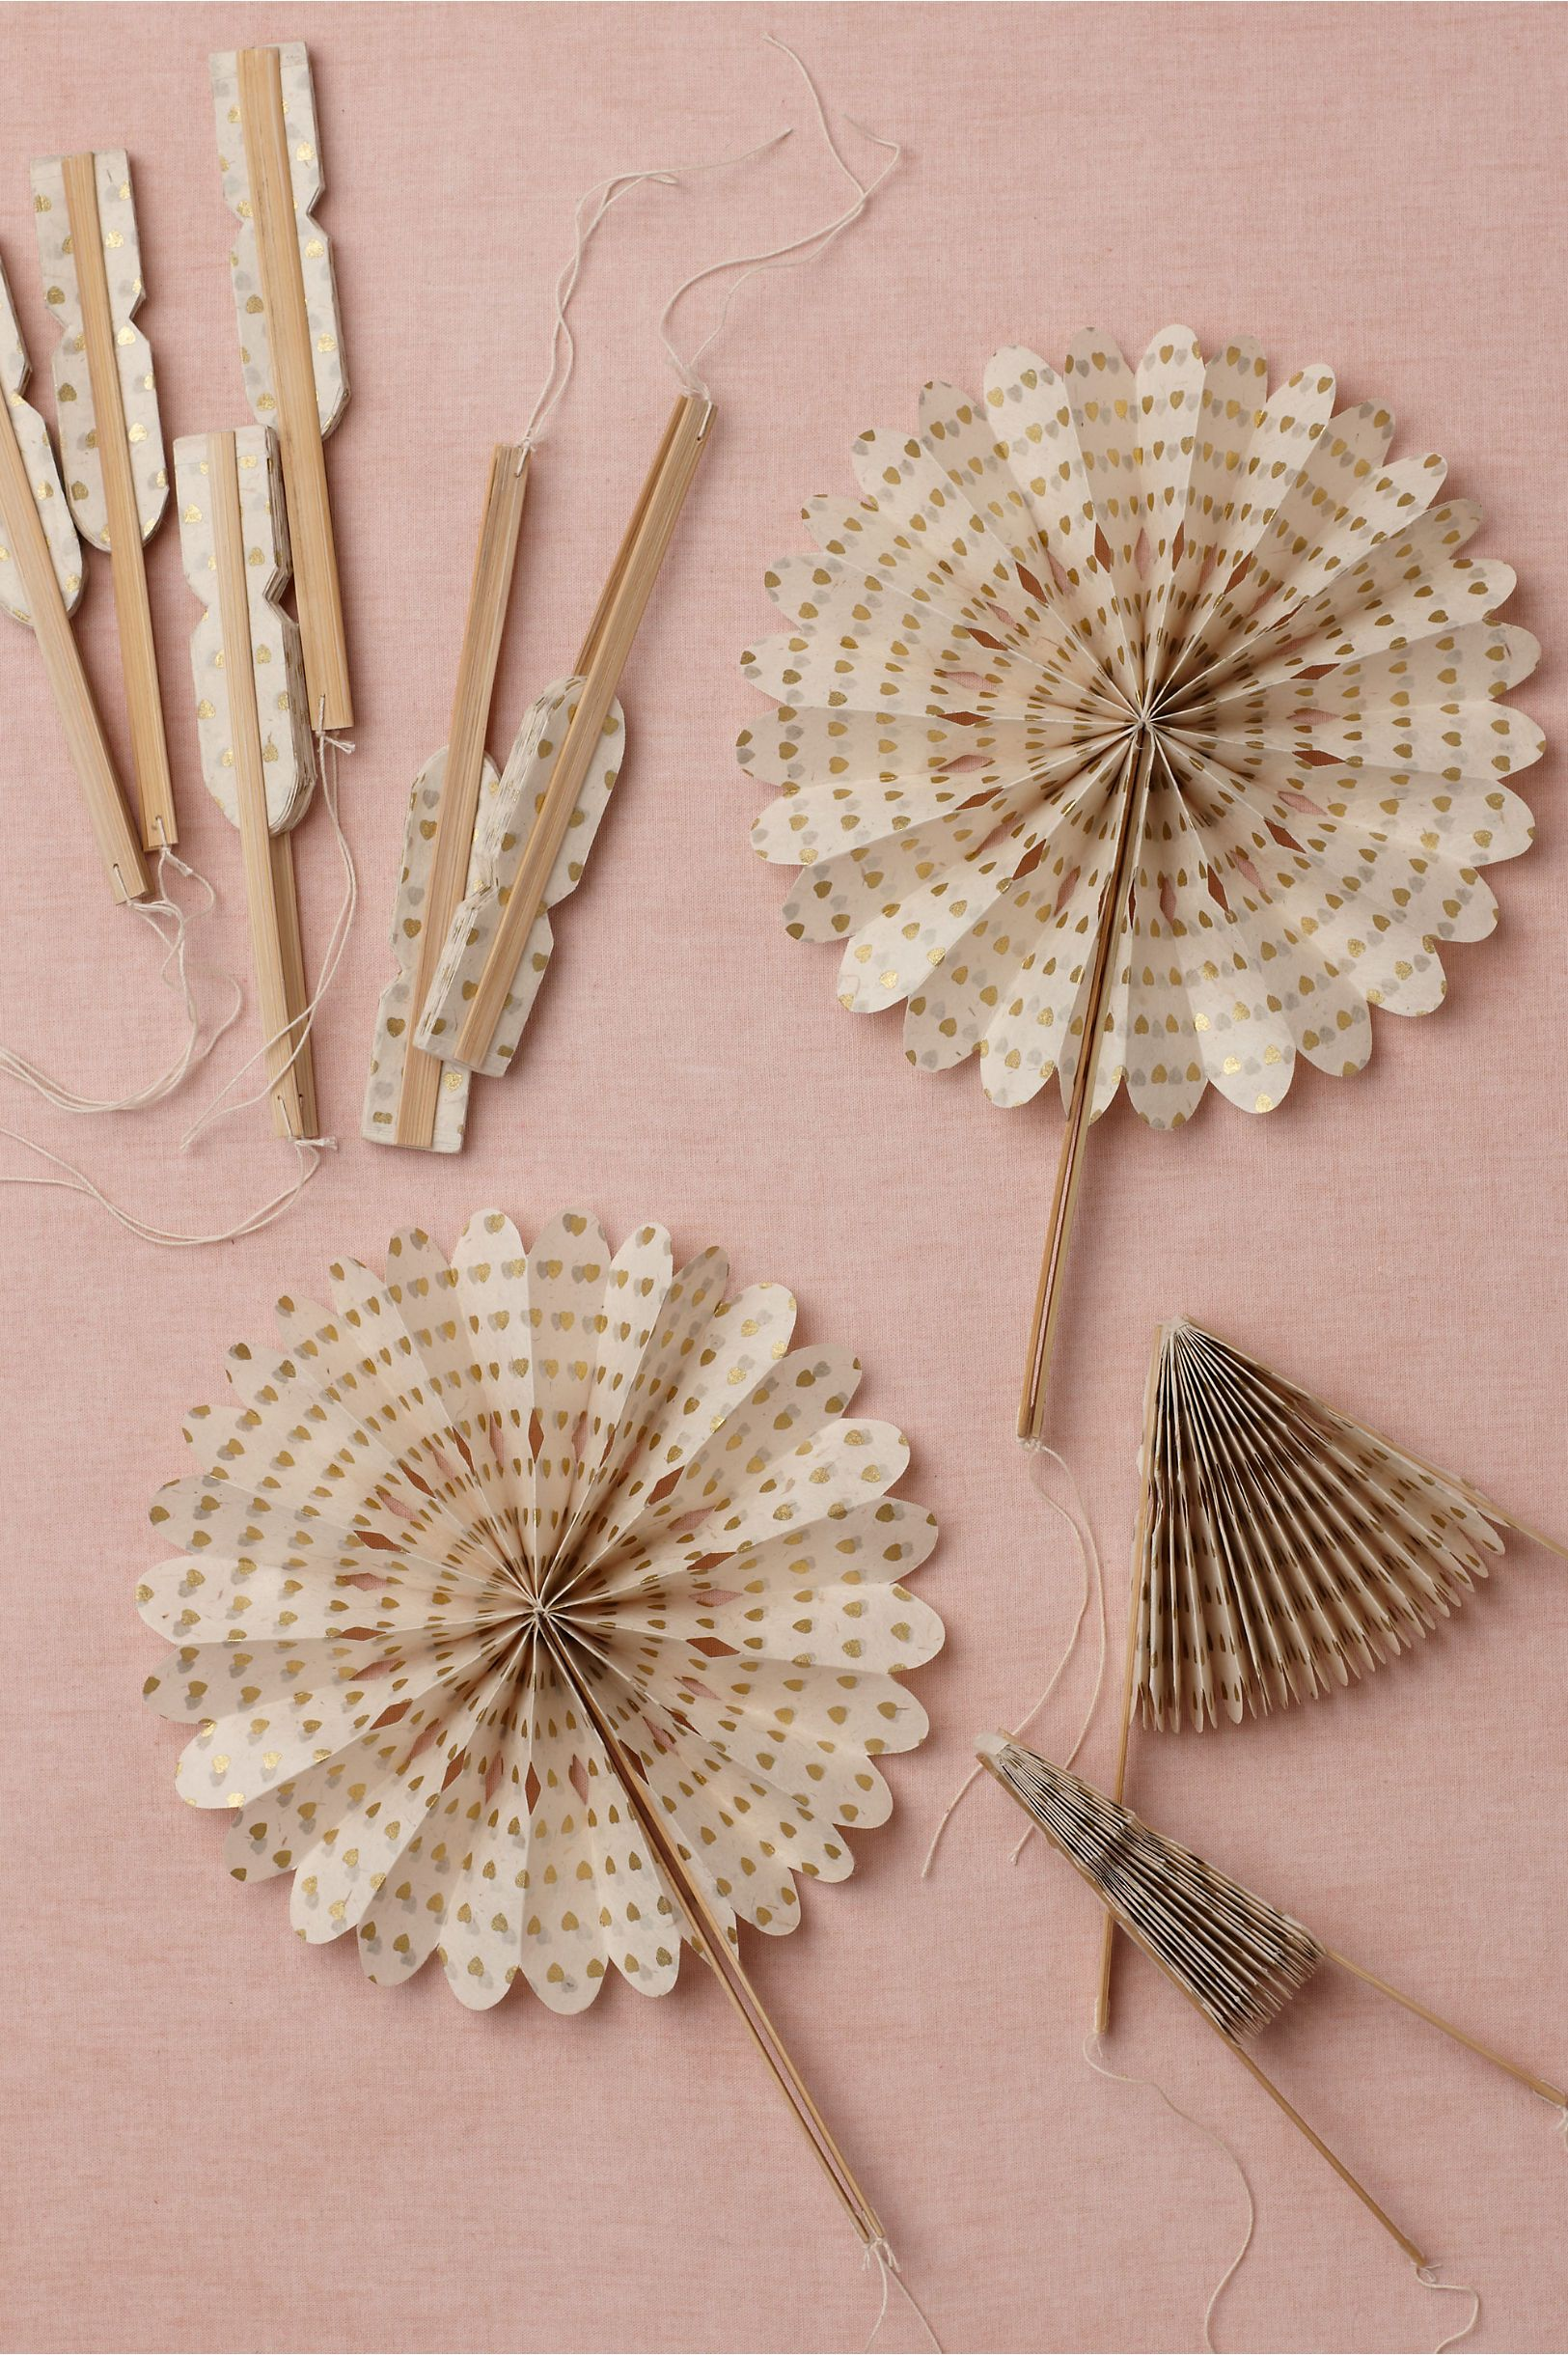 Crinkle Fans  from BHLDN  Liezel en Frederick troue  Pinterest